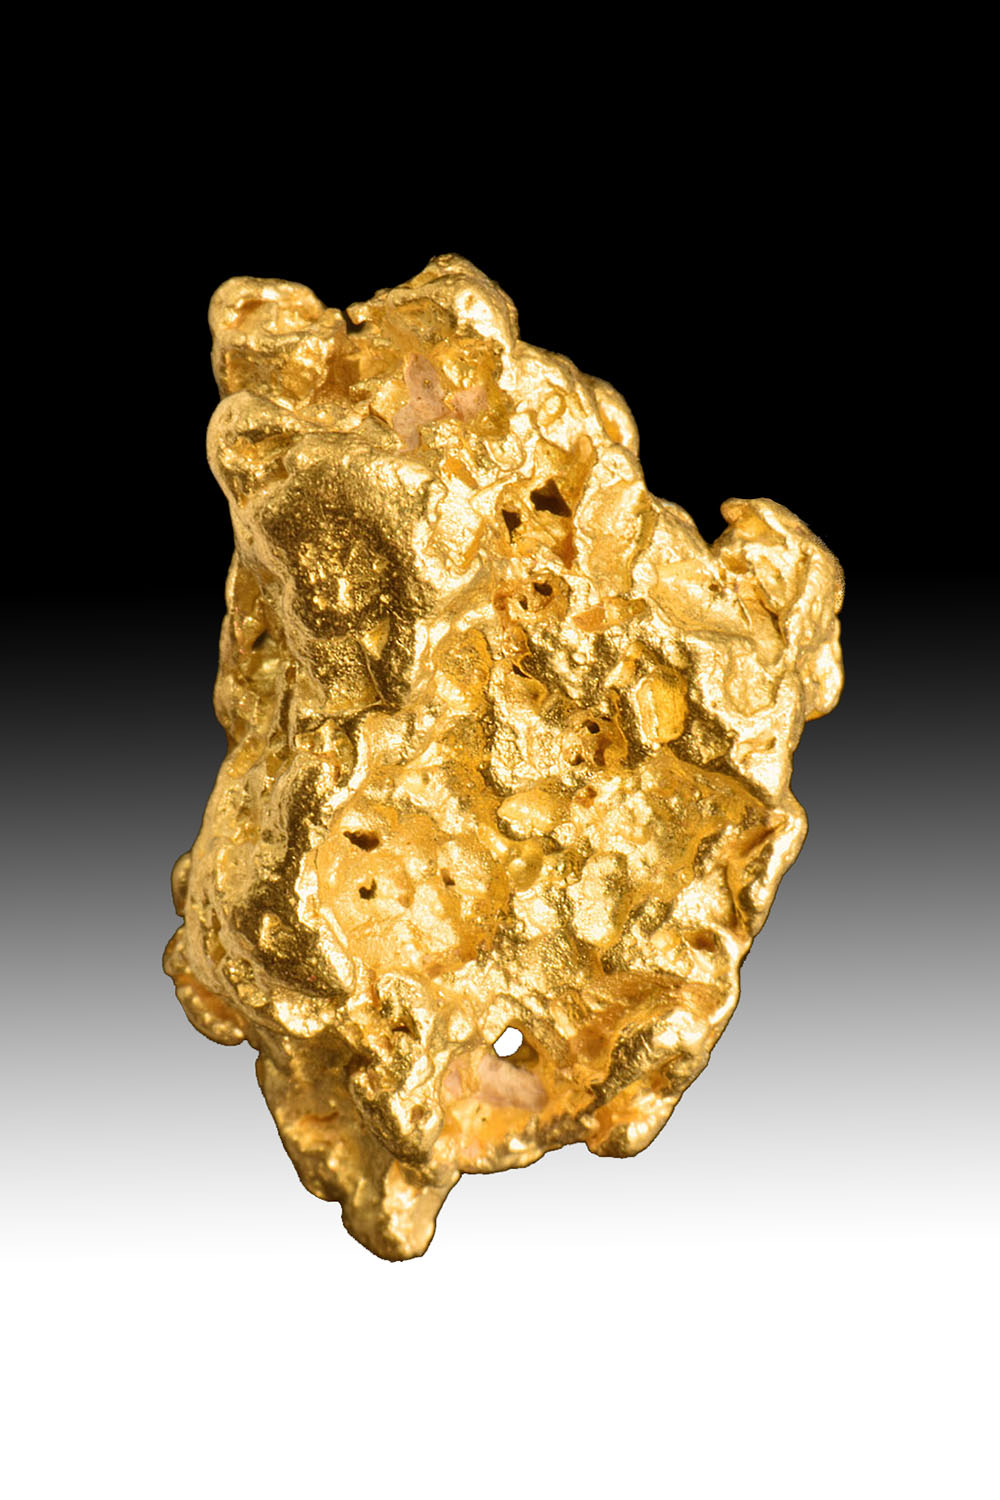 Native Jewelry/Investment Grade Gold Nugget From Australia